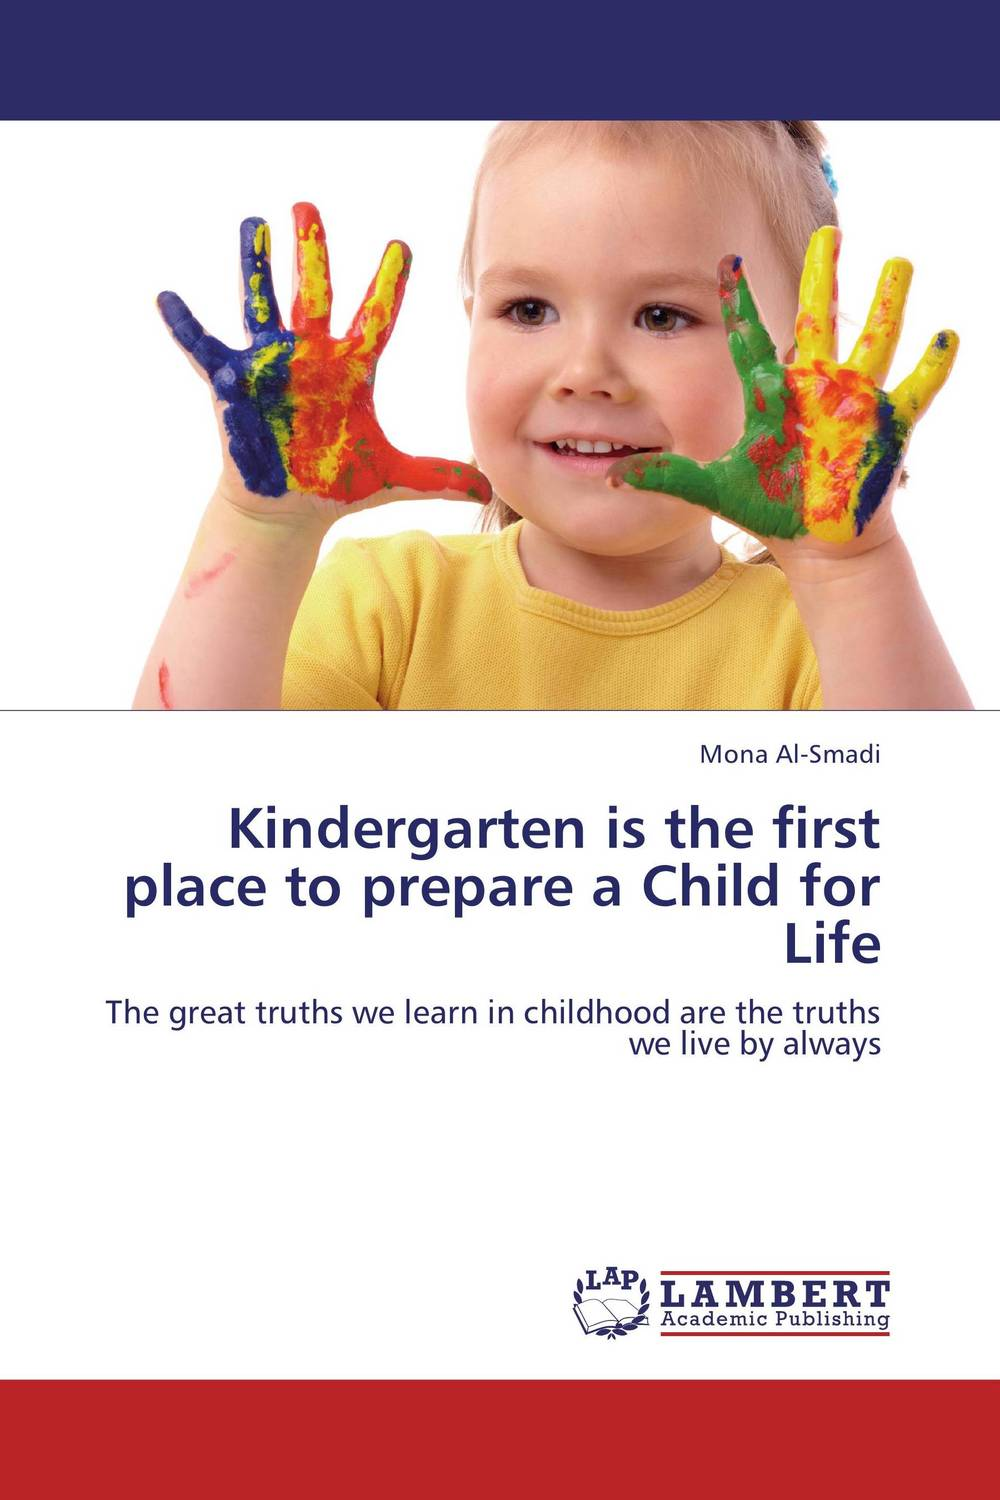 Kindergarten is the first place to prepare a Child for Life leds c4 tron 05 1549 54 h6